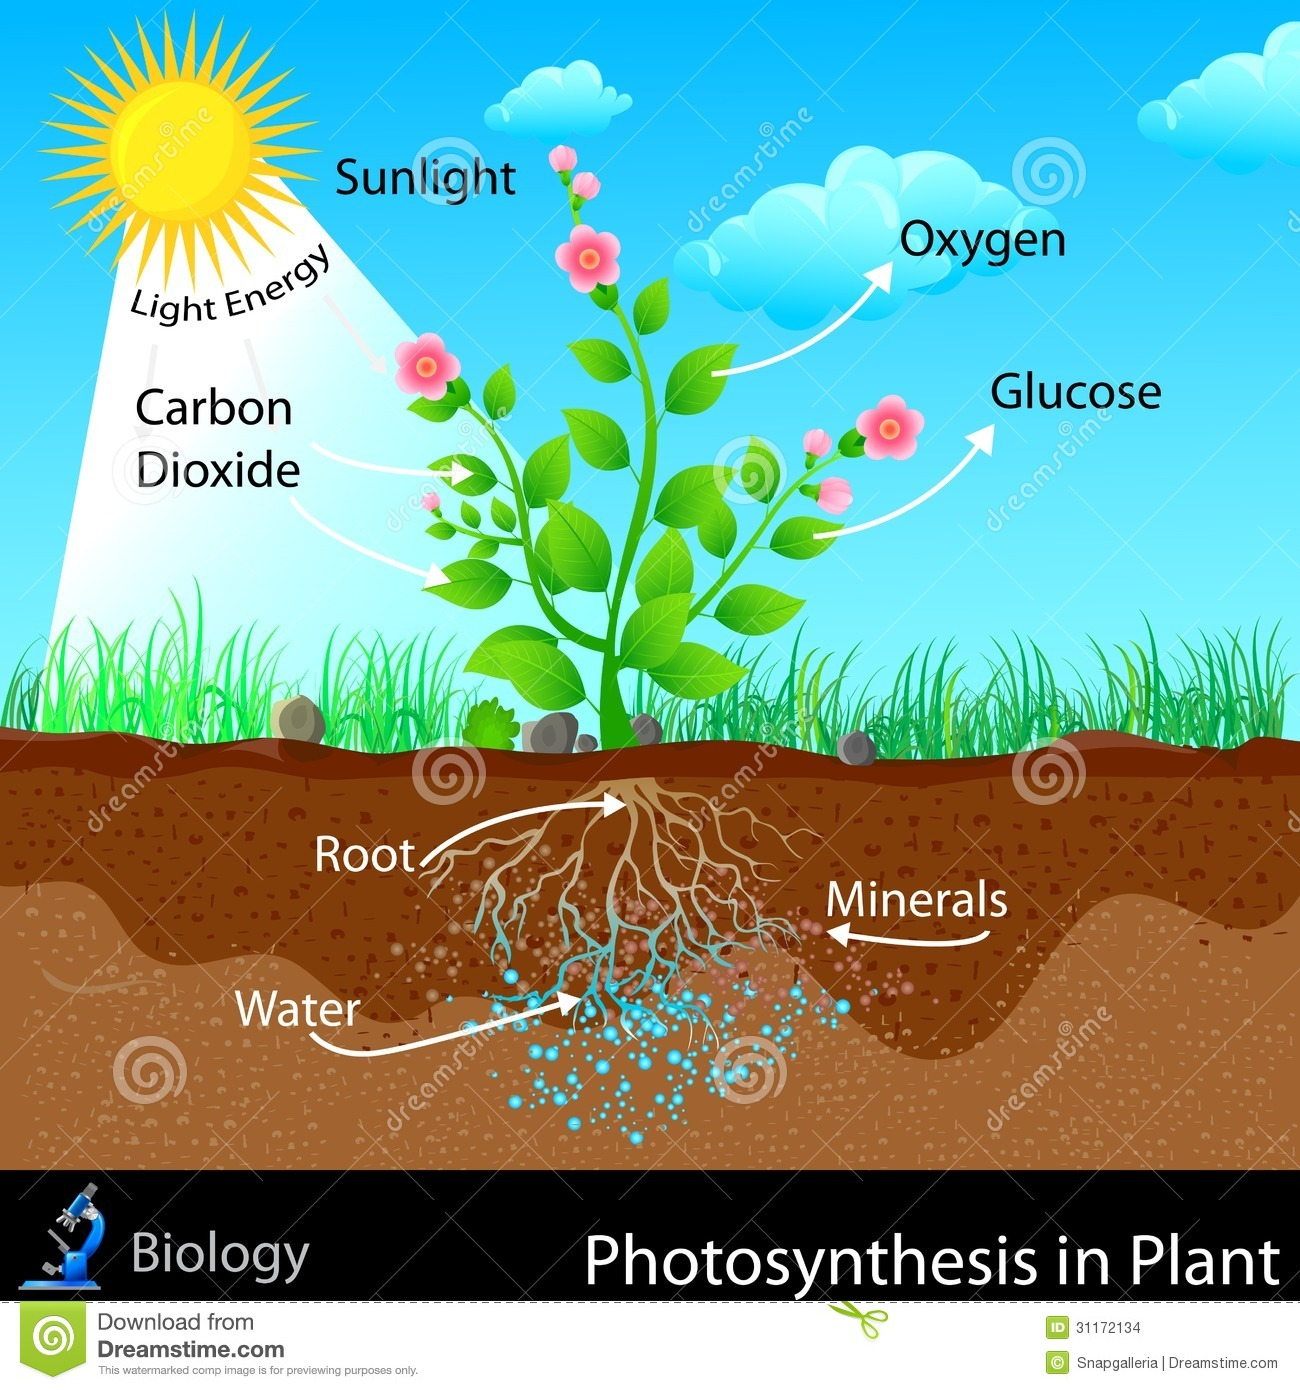 The site of photosynthesis in a plant is M: Plants: Photosynthesis